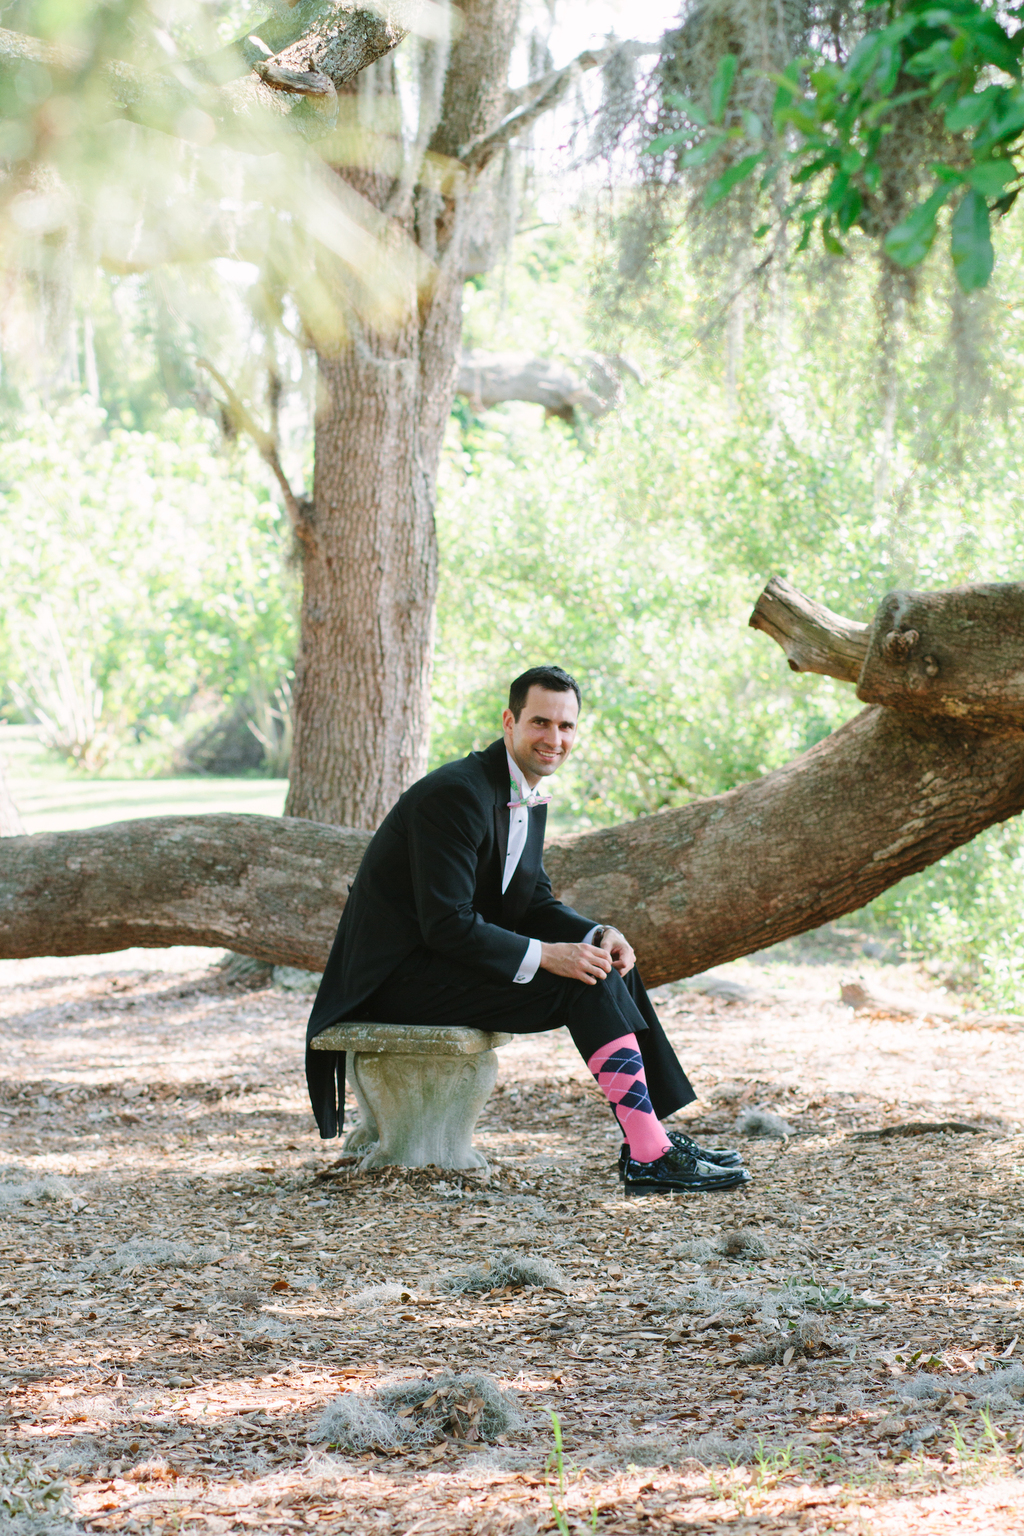 Classic-groom-shows-off-funky-pink-argyle-socks.full